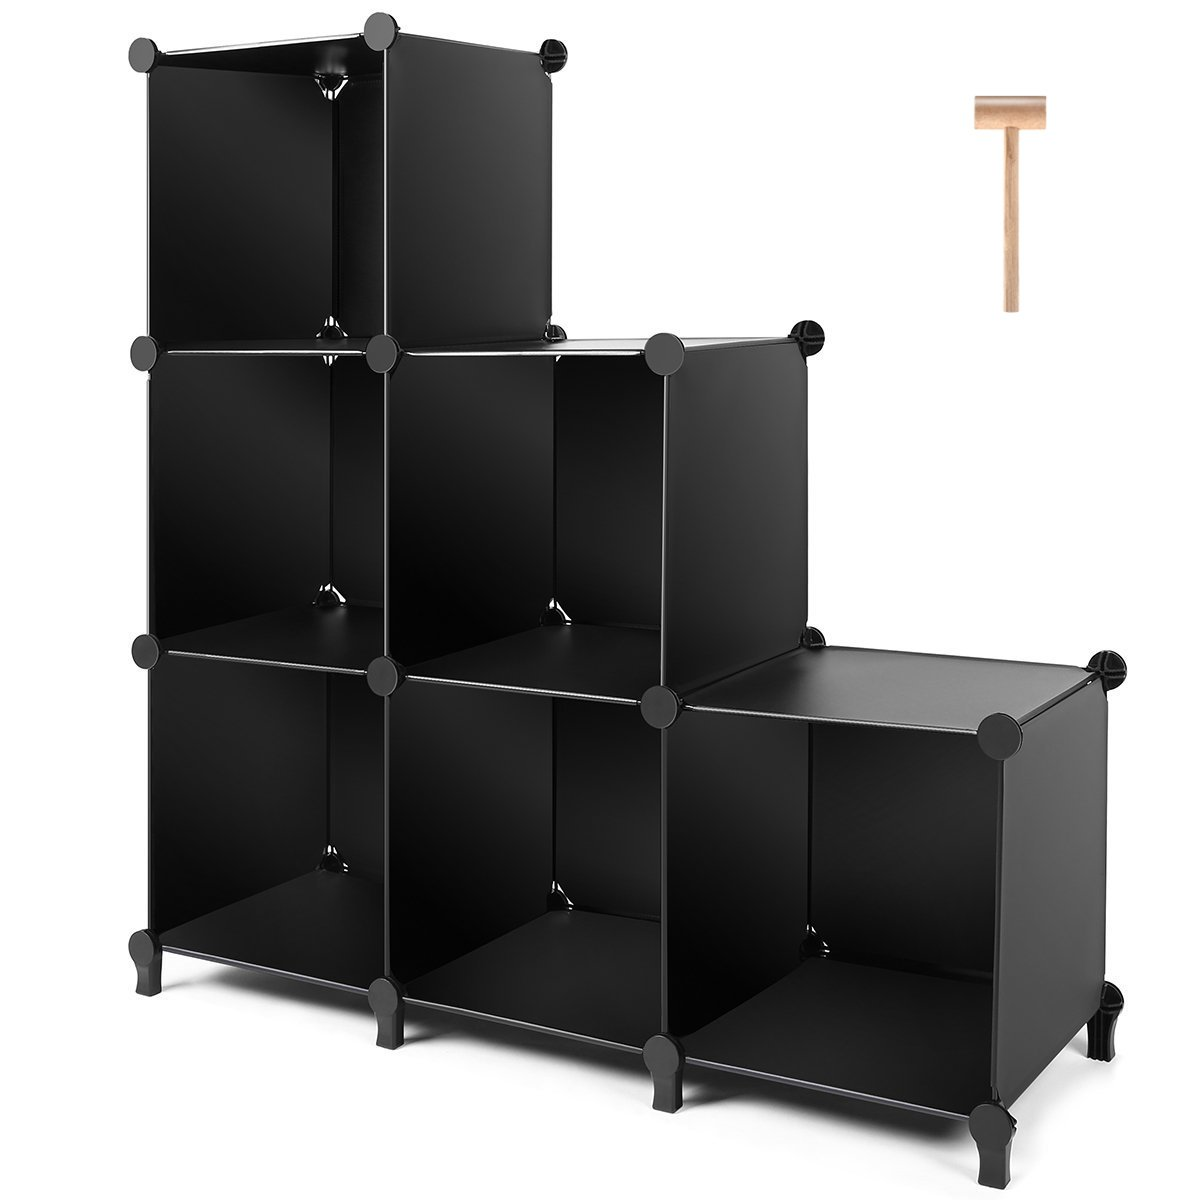 TomCare Cube Storage 6-Cube Closet Organizer Storage Shelves Cubes Organizer DIY Plastic Closet Cabinet Modular Book Shelf Organizing Storage Shelving for Bedroom Living Room Office, Black